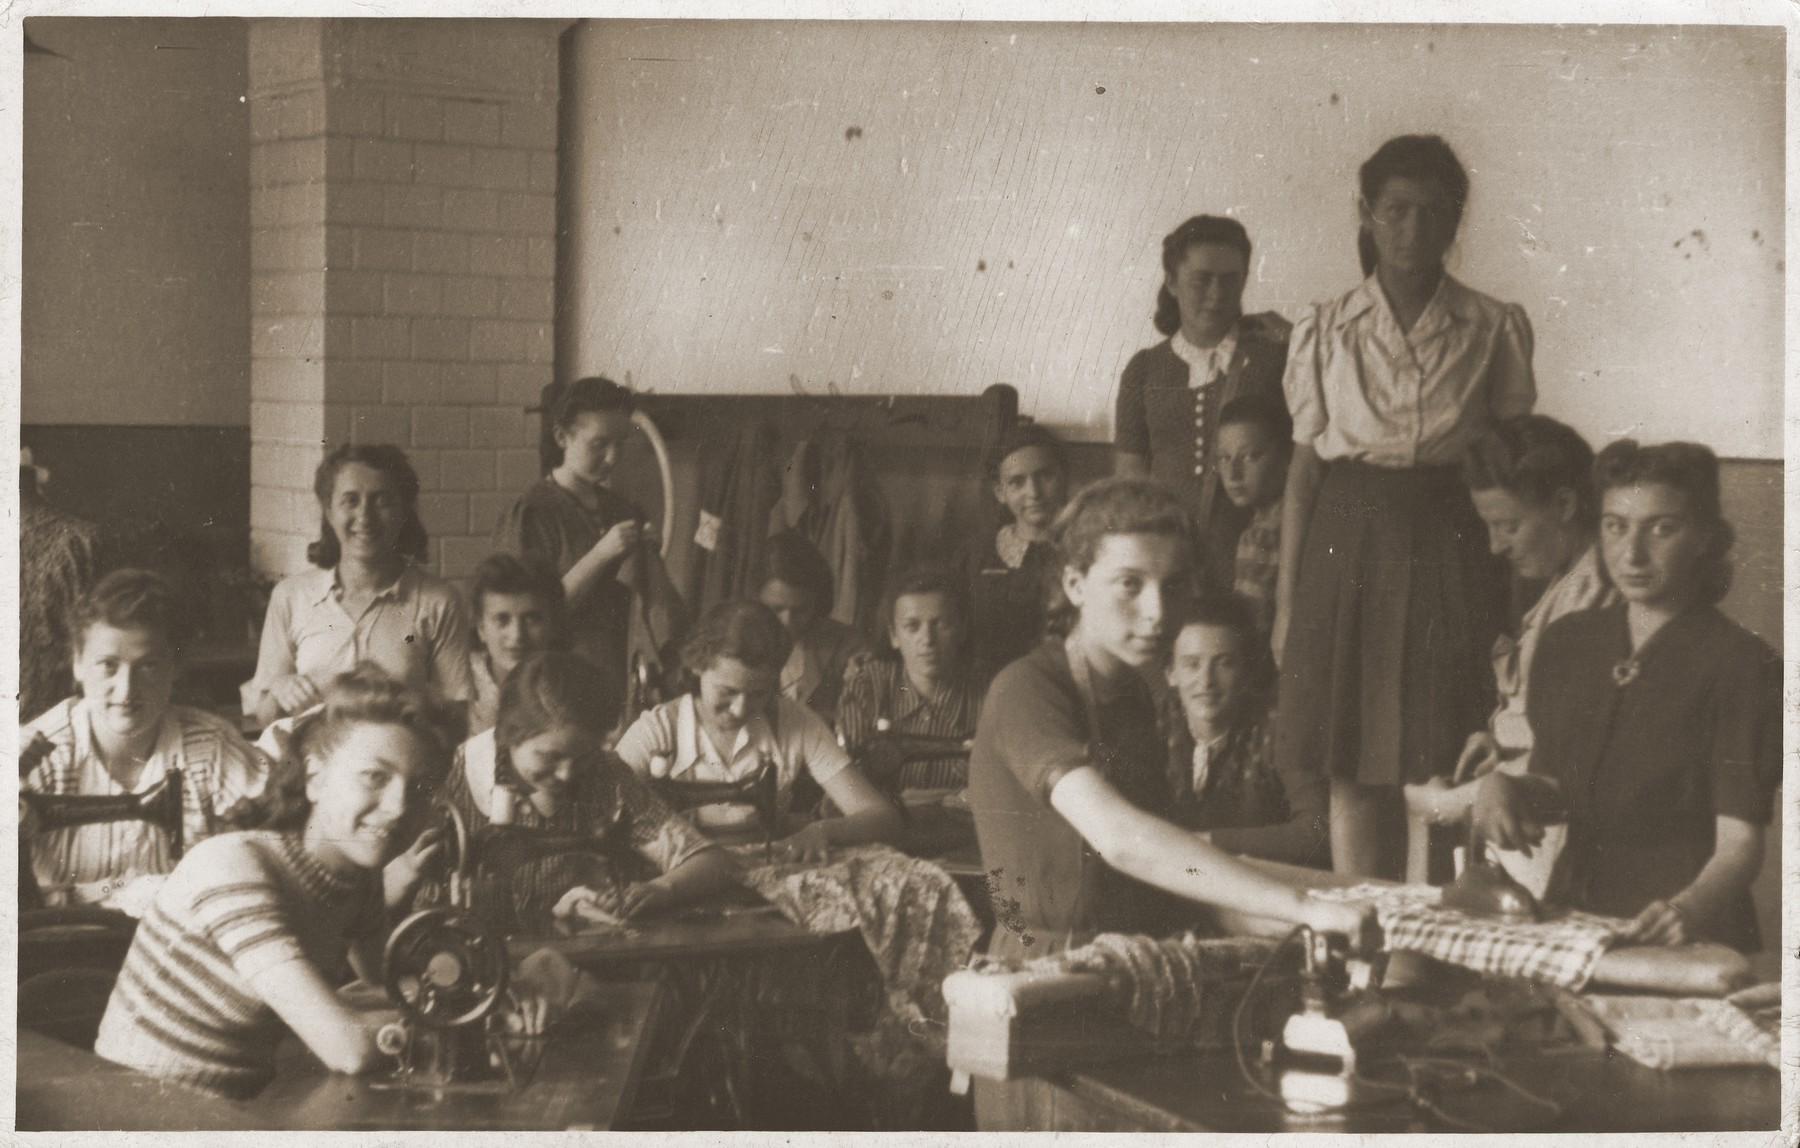 Sewing workshop in the Sosnowiec ghetto.    Seated in the middle is Hinda Chilewicz.  Standing from the right is Dorka Piorko, Fredka Landau and Cesia Chmielnicka.  Standing on the left is Mania Herszlikiewicz.